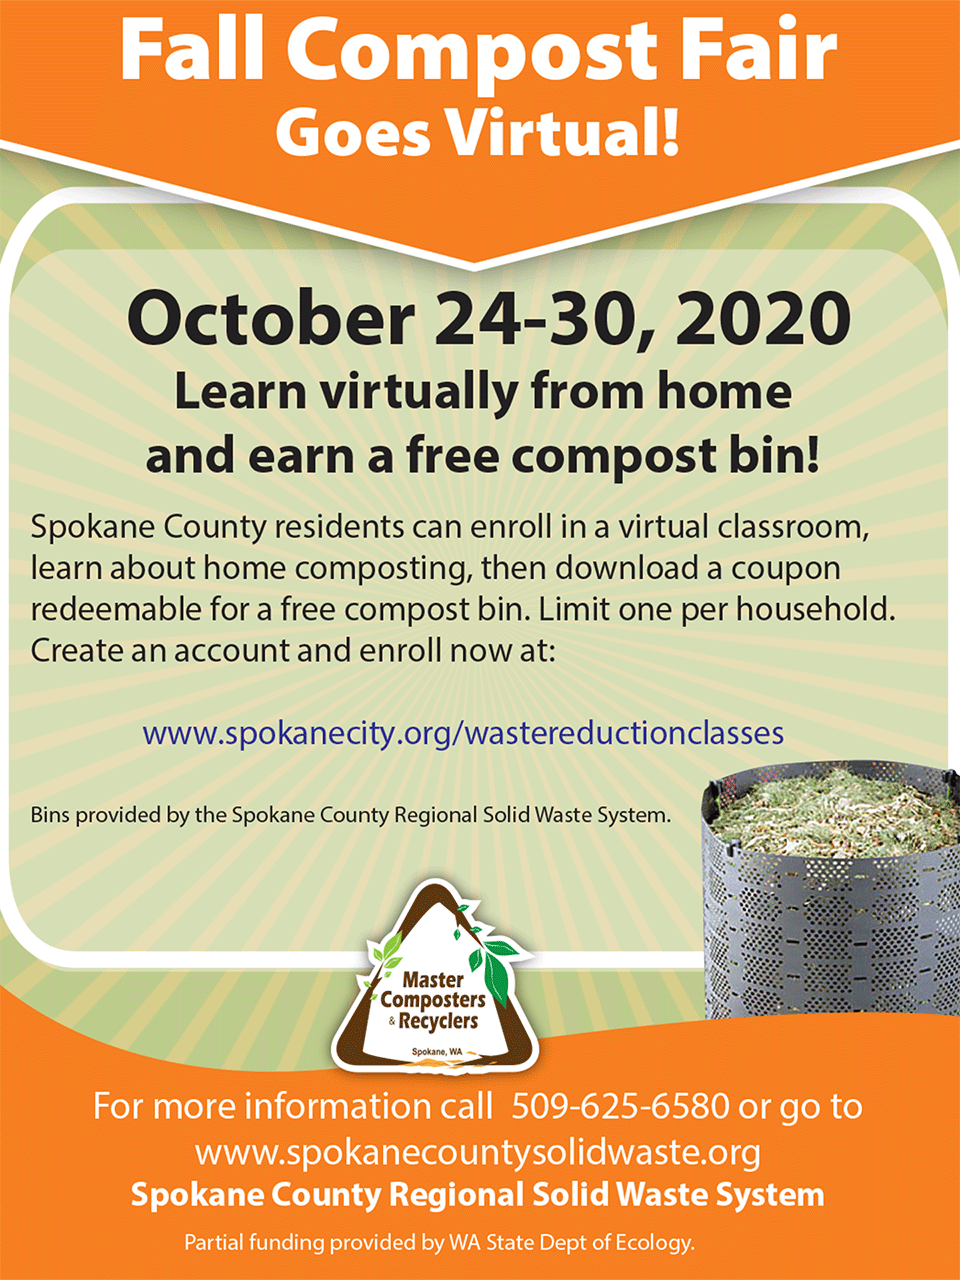 2020 Fall Compost Fair Poster